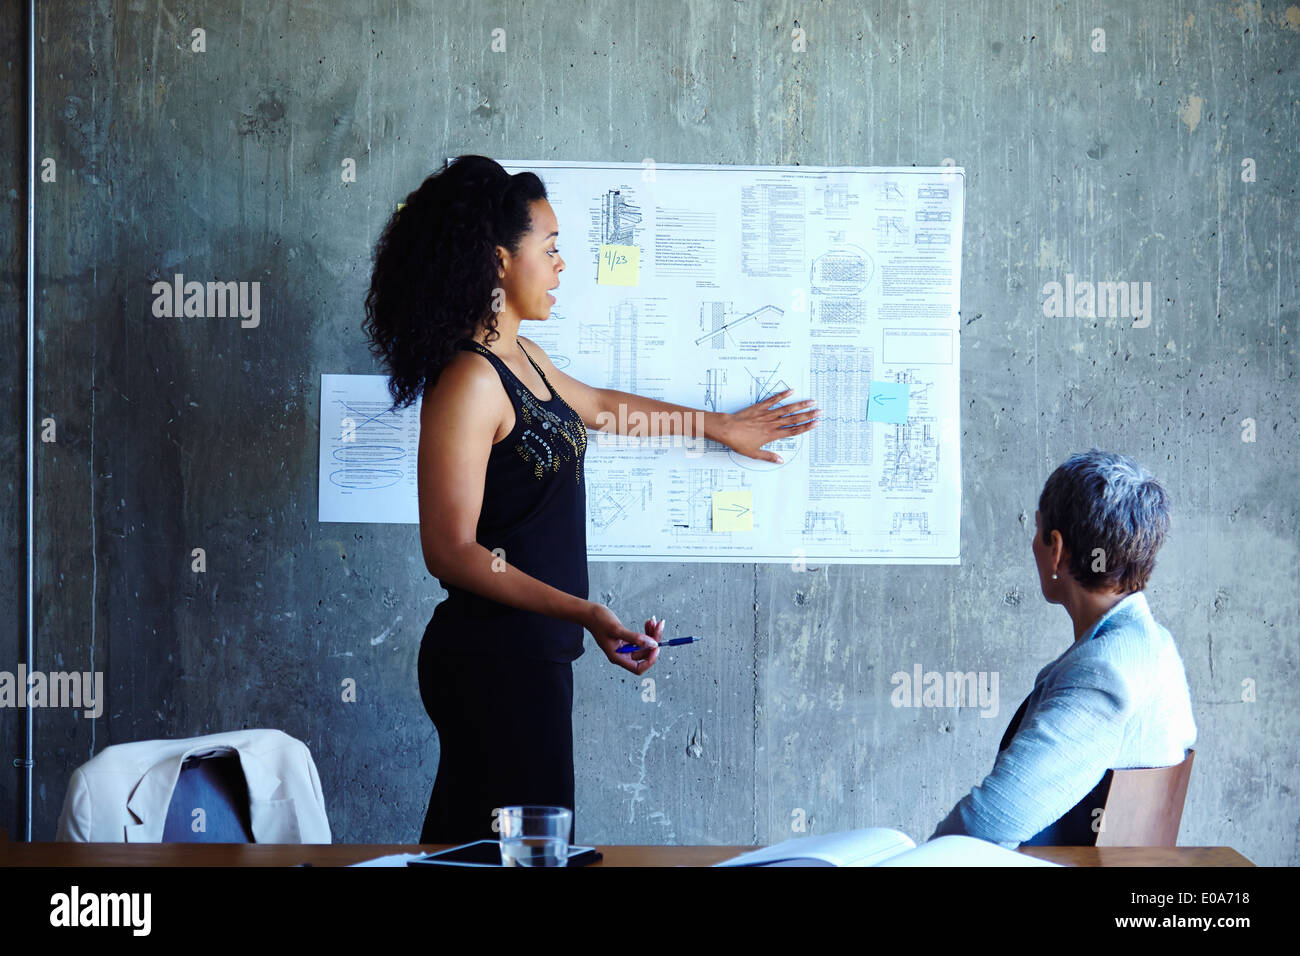 Young businesswomen presenting ideas at meeting - Stock Image